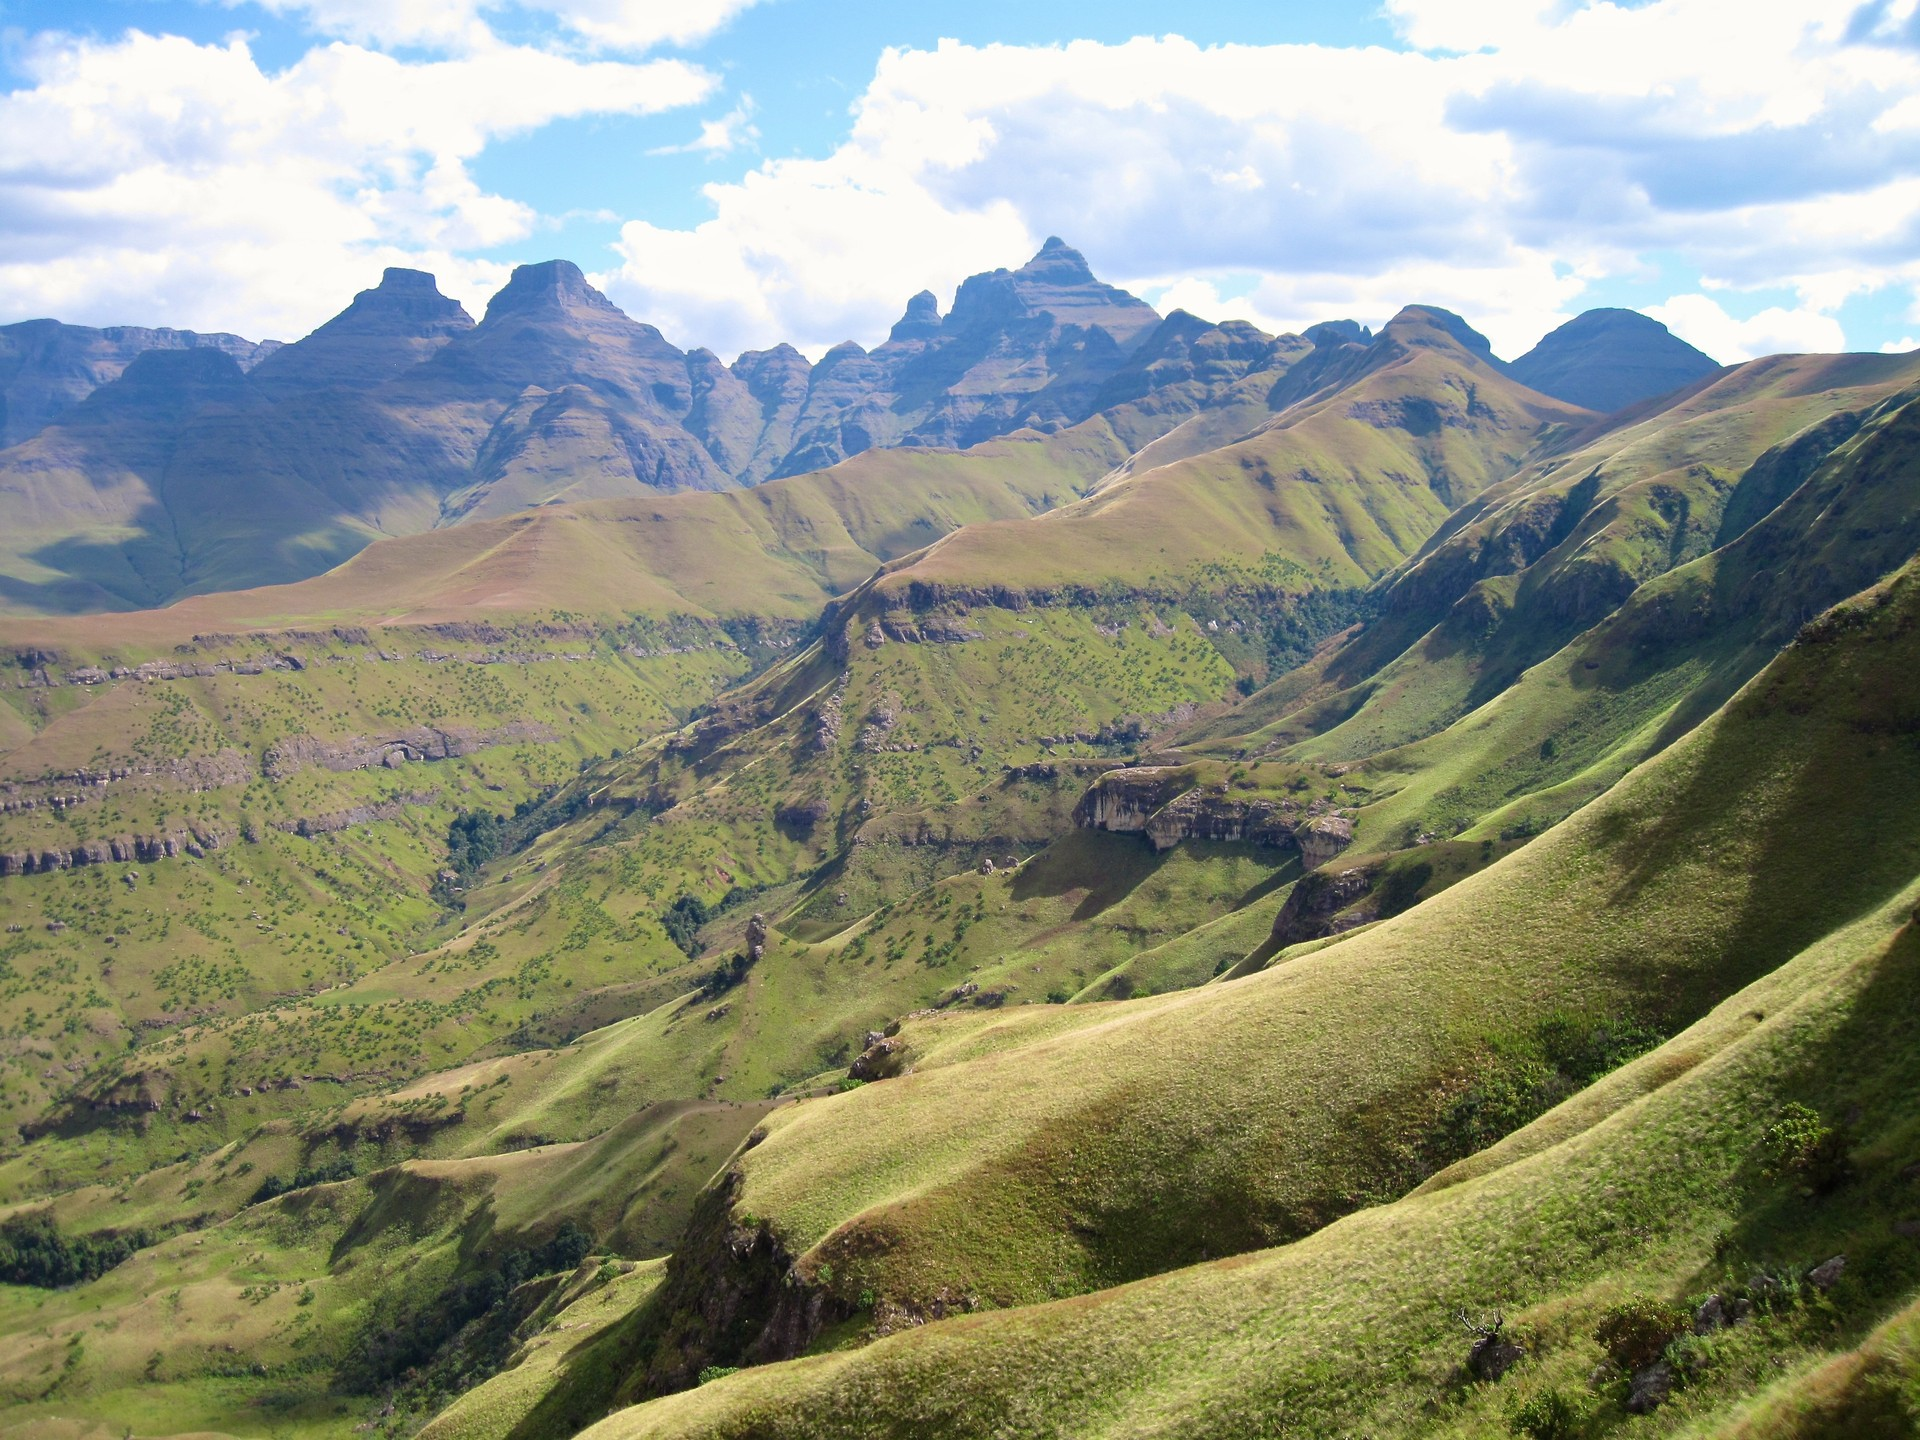 View of Cathedral Peak, Drakensberg mountains, South Africa